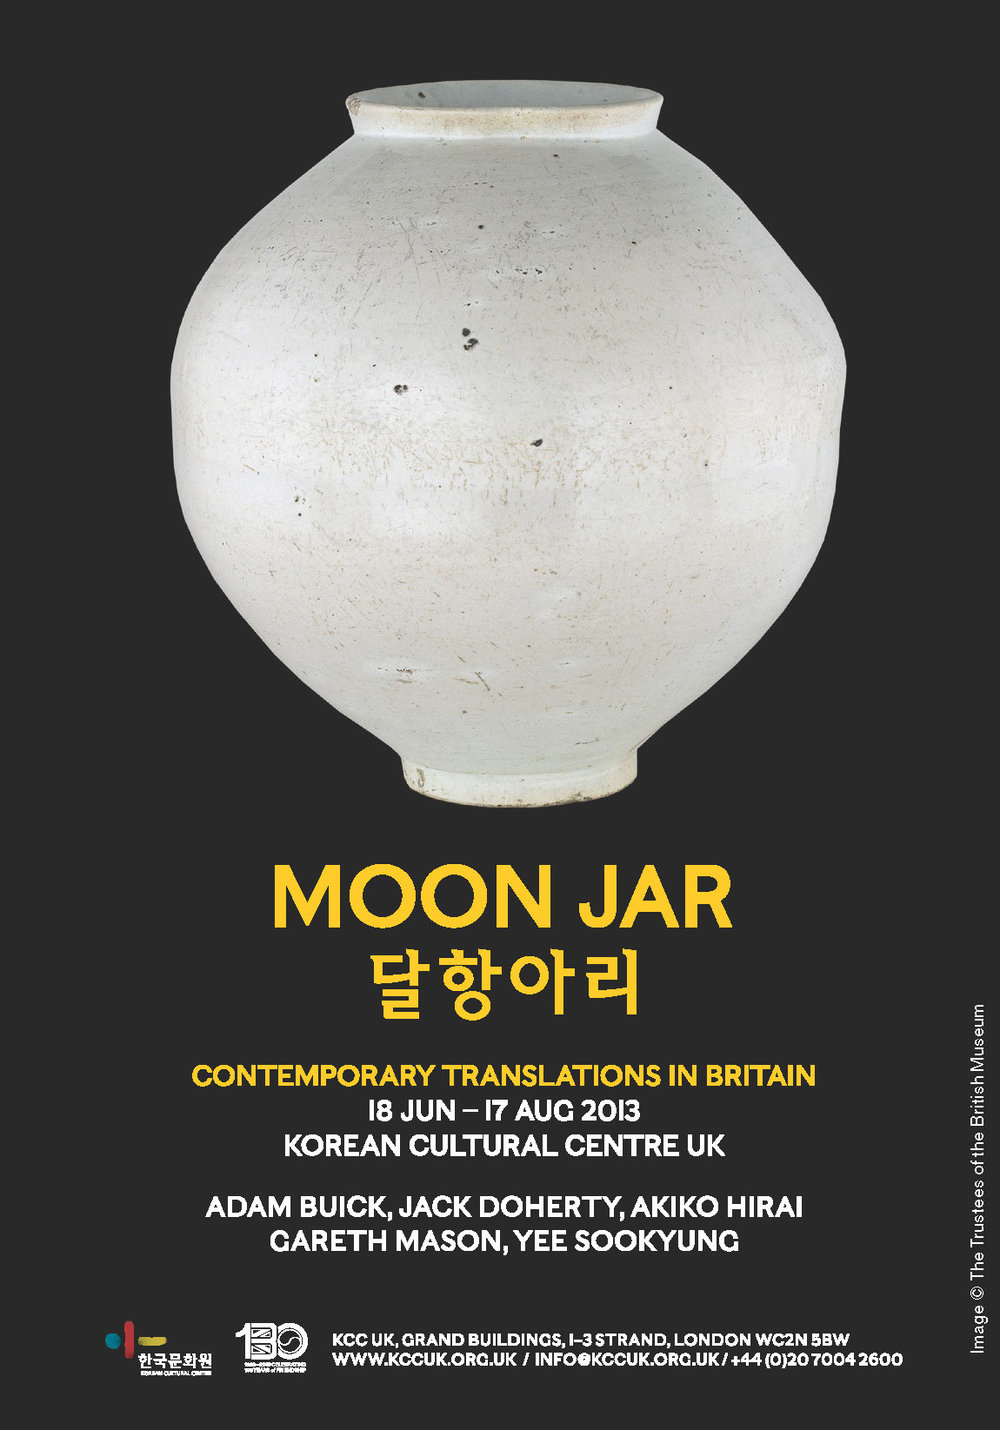 doherty-porcelain-KCC-Moon-Jar-Advert.jpg